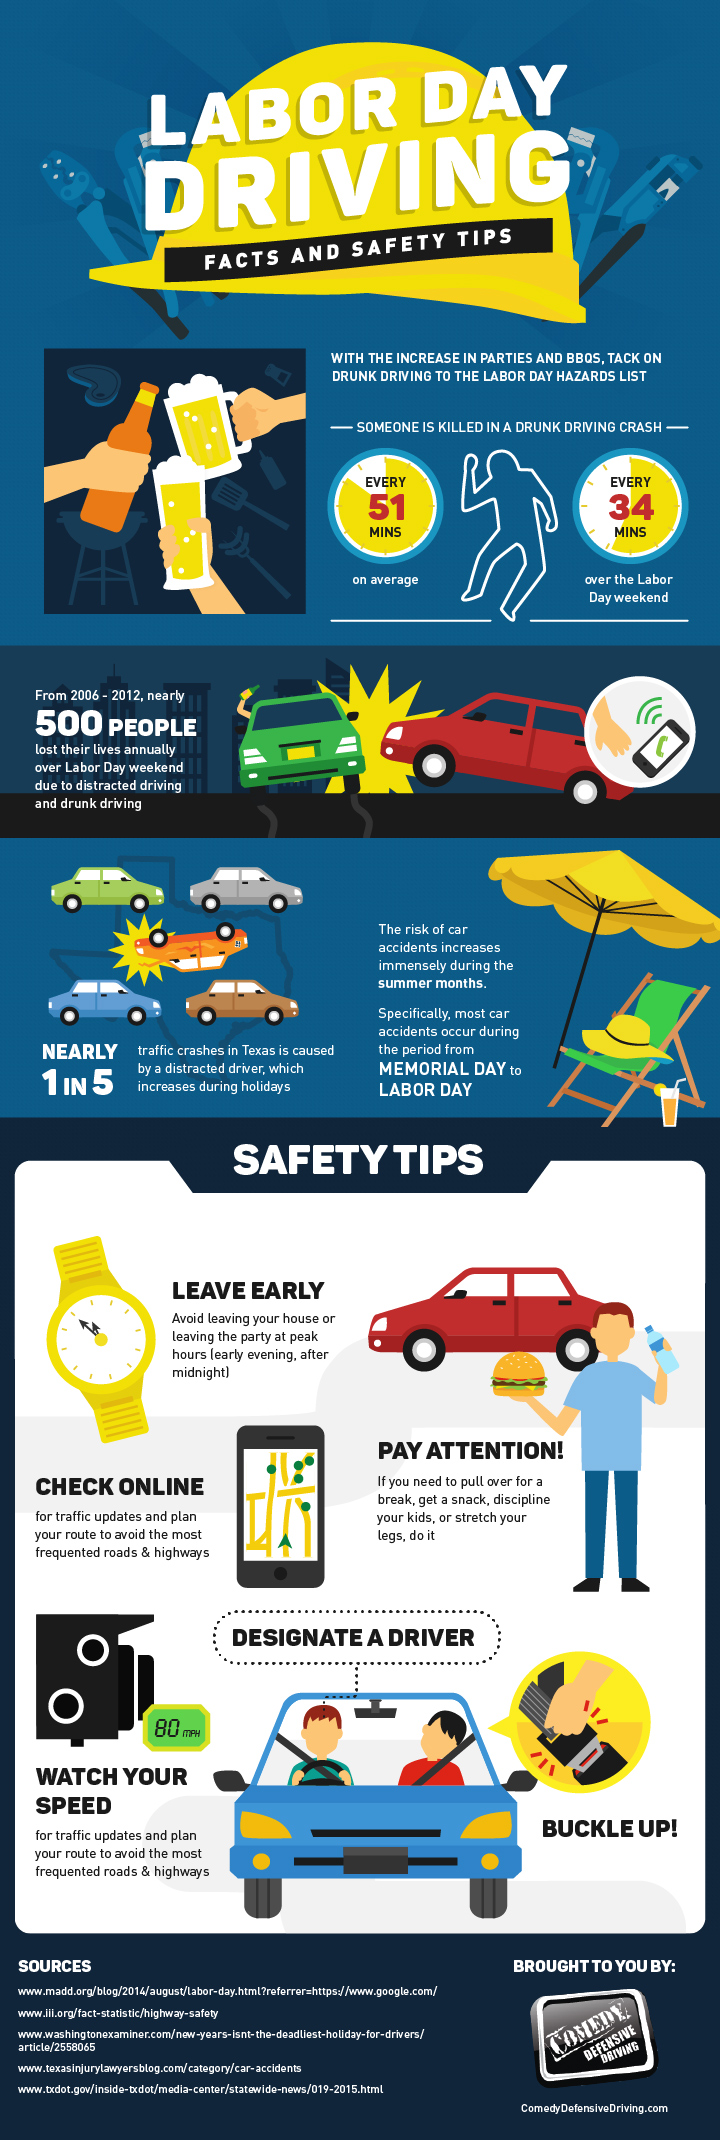 driving-LaborDay-Infographic